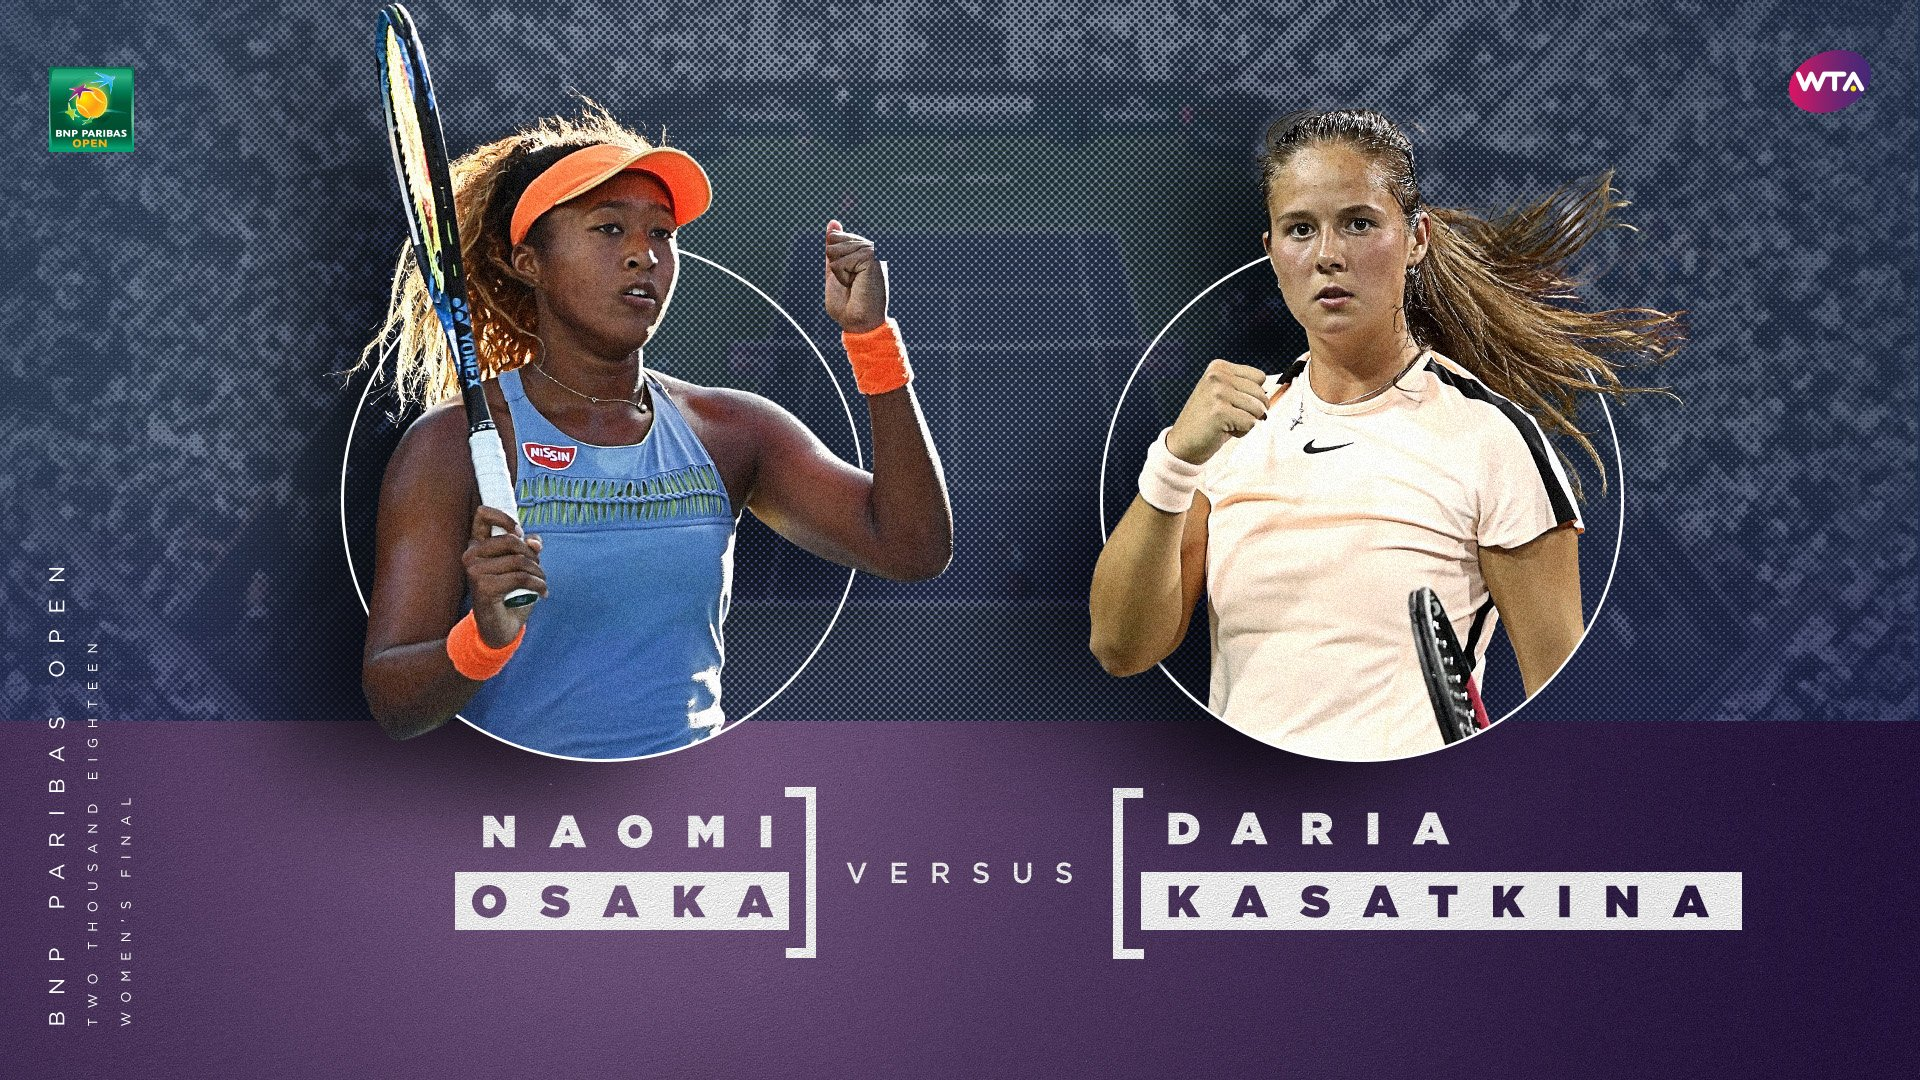 .@WTA_insider previews the @BNPPARIBASOPEN final and all they see is 20/20 vision!  ➡️➡️ https://t.co/MR0tkxpQt5 https://t.co/srU0PQfdKL